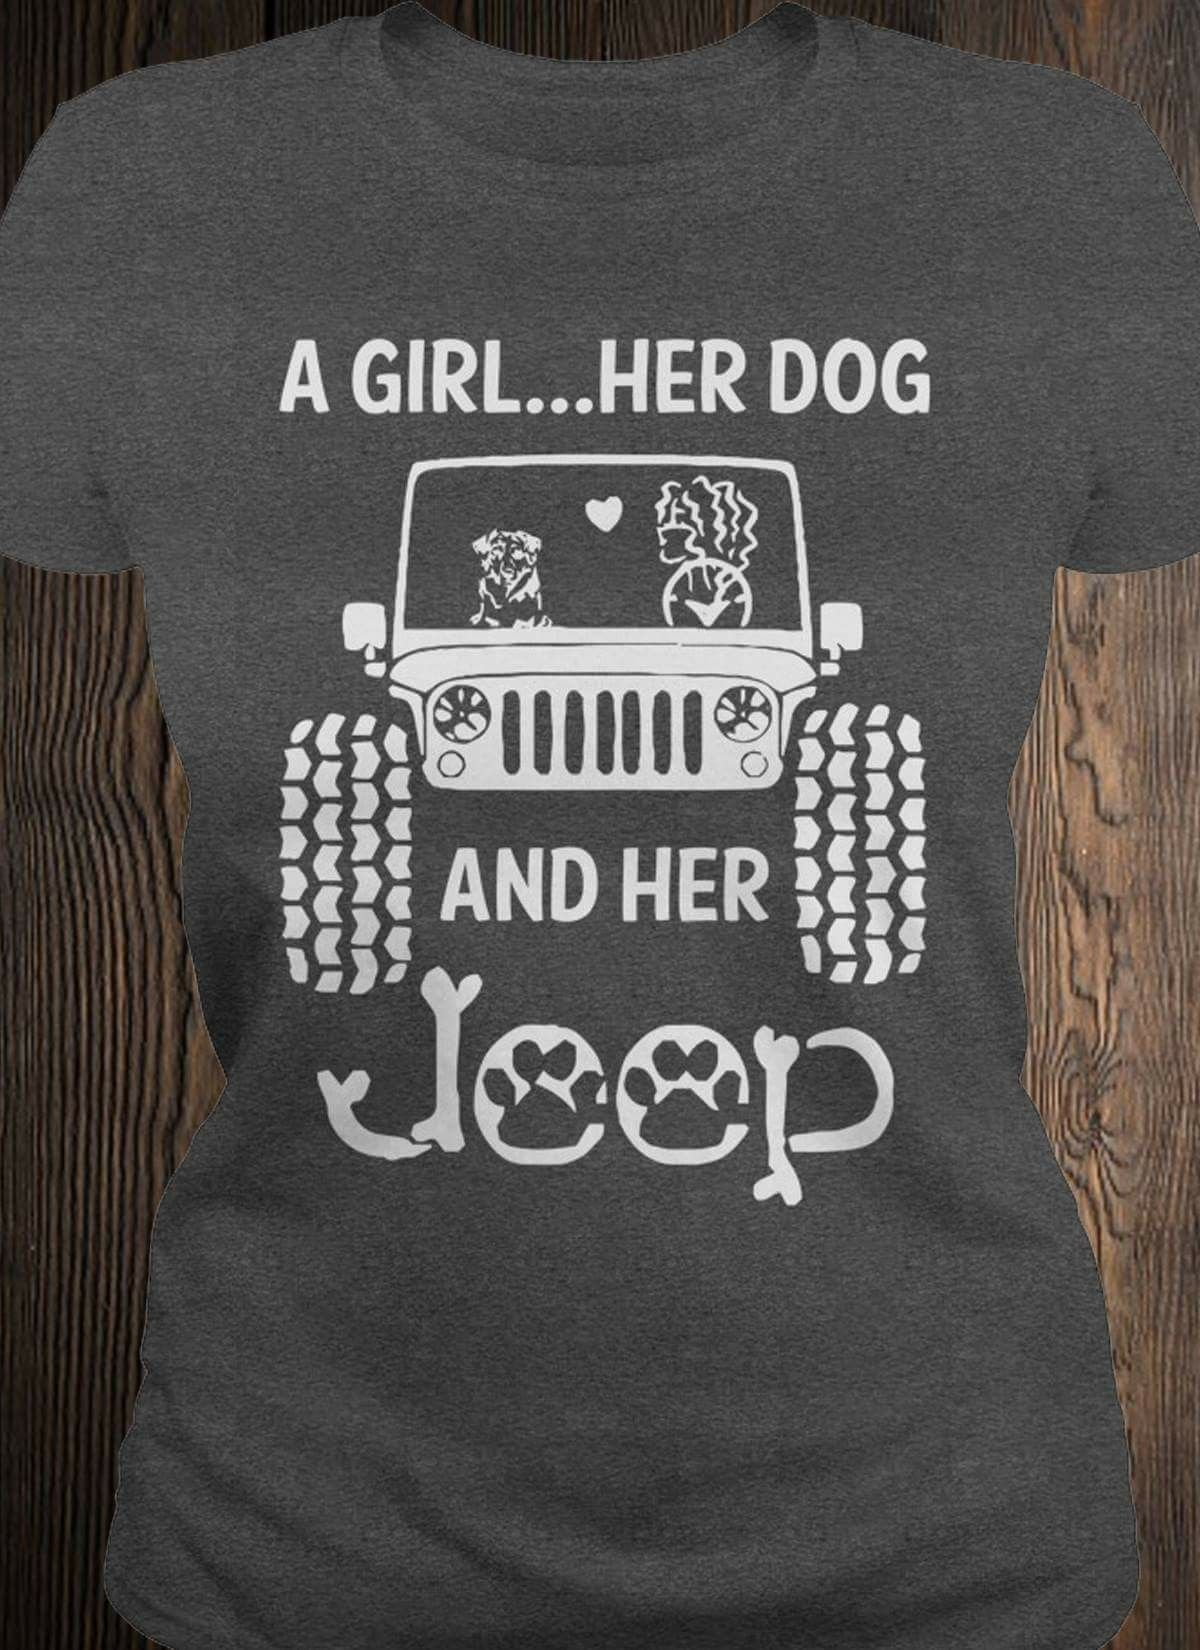 My Goals In Life Lol With Images Jeep Shirts Jeep Dogs Jeep